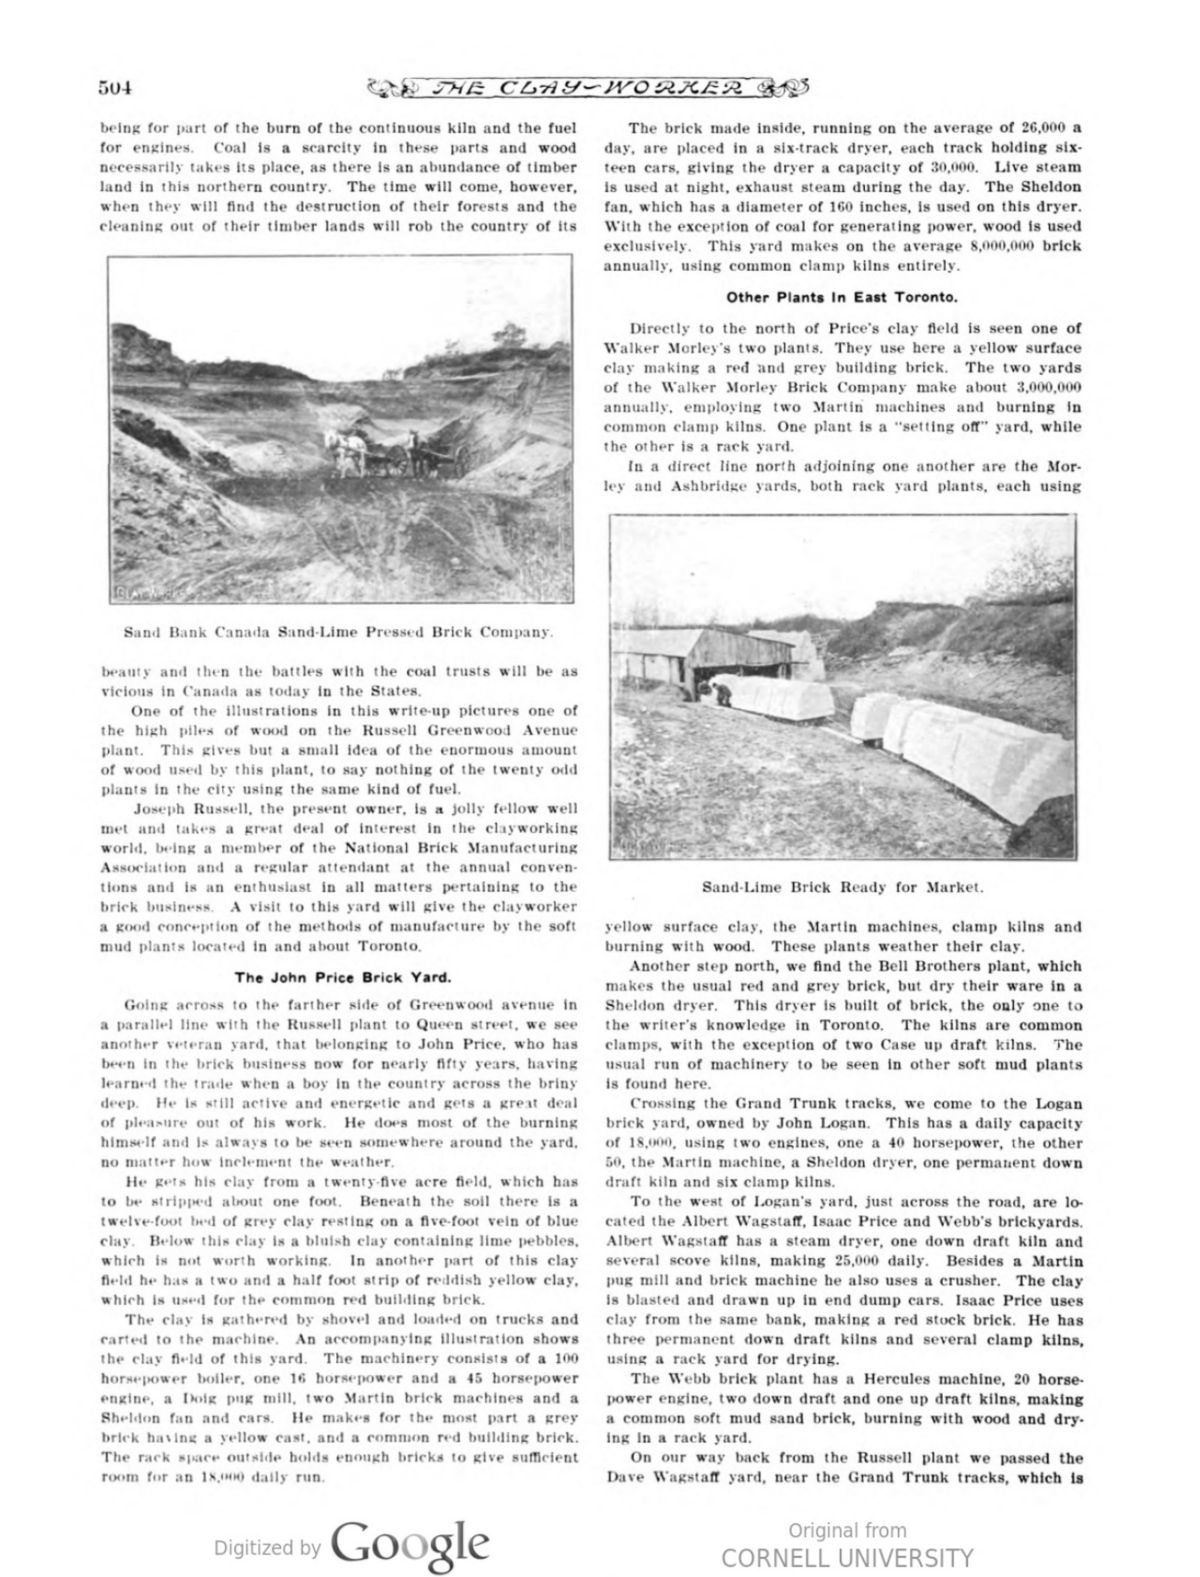 The Clay Worker Nov 1906 504